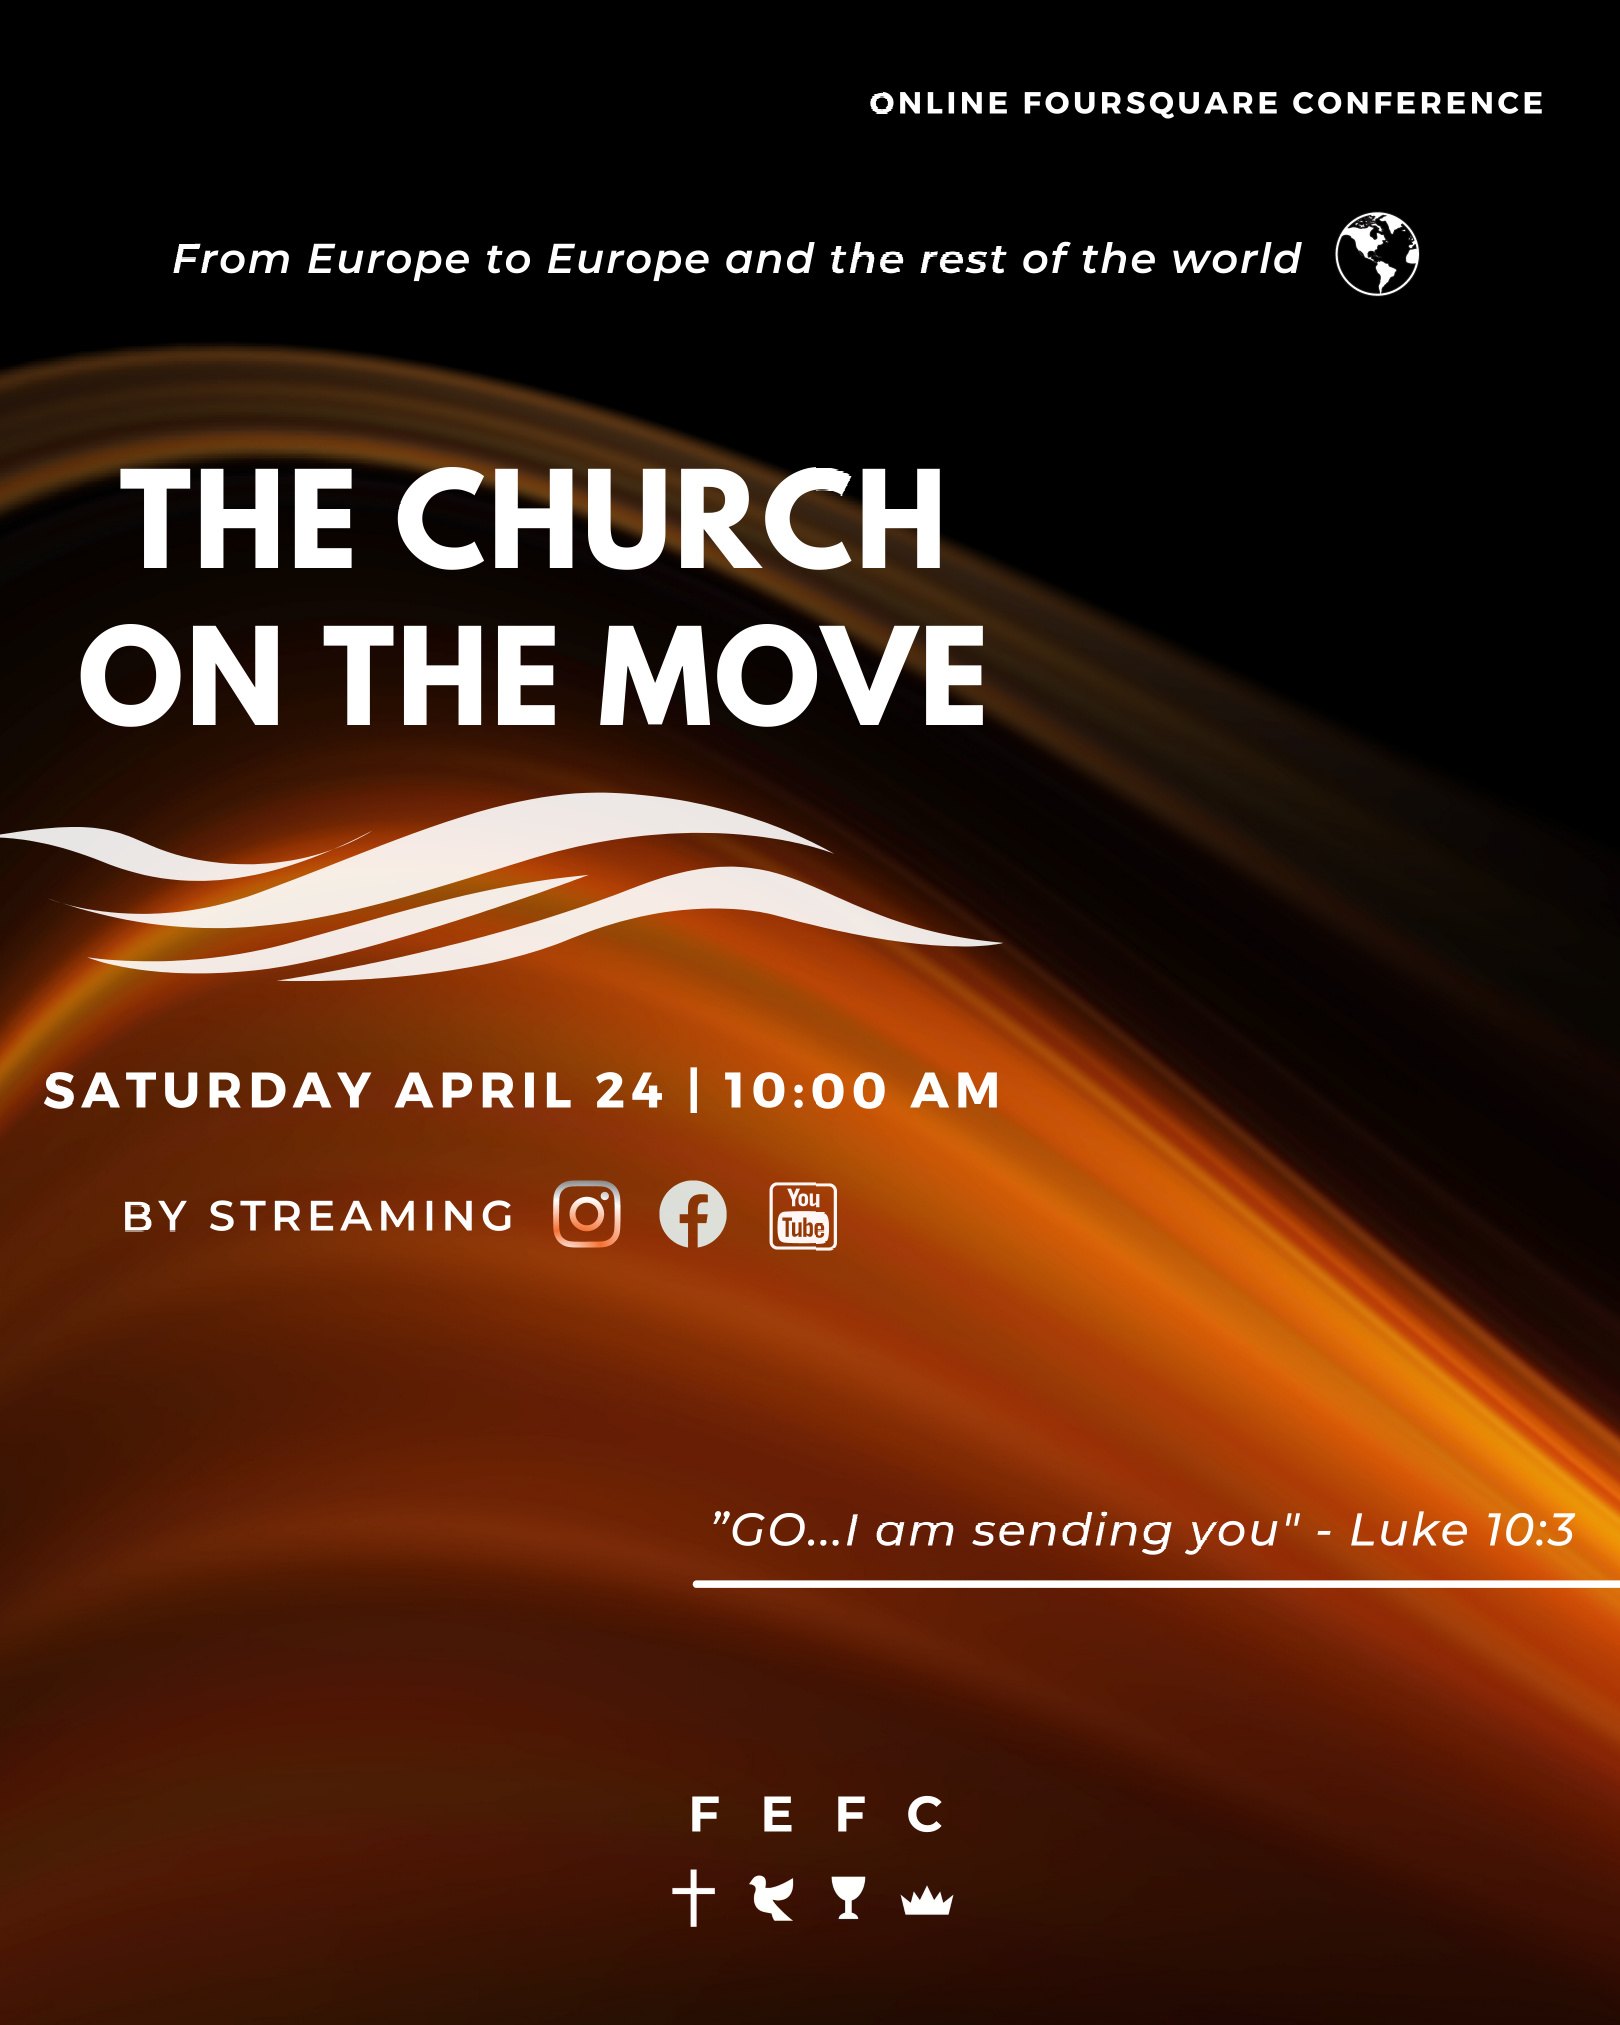 Foursquare Europe Online Conference